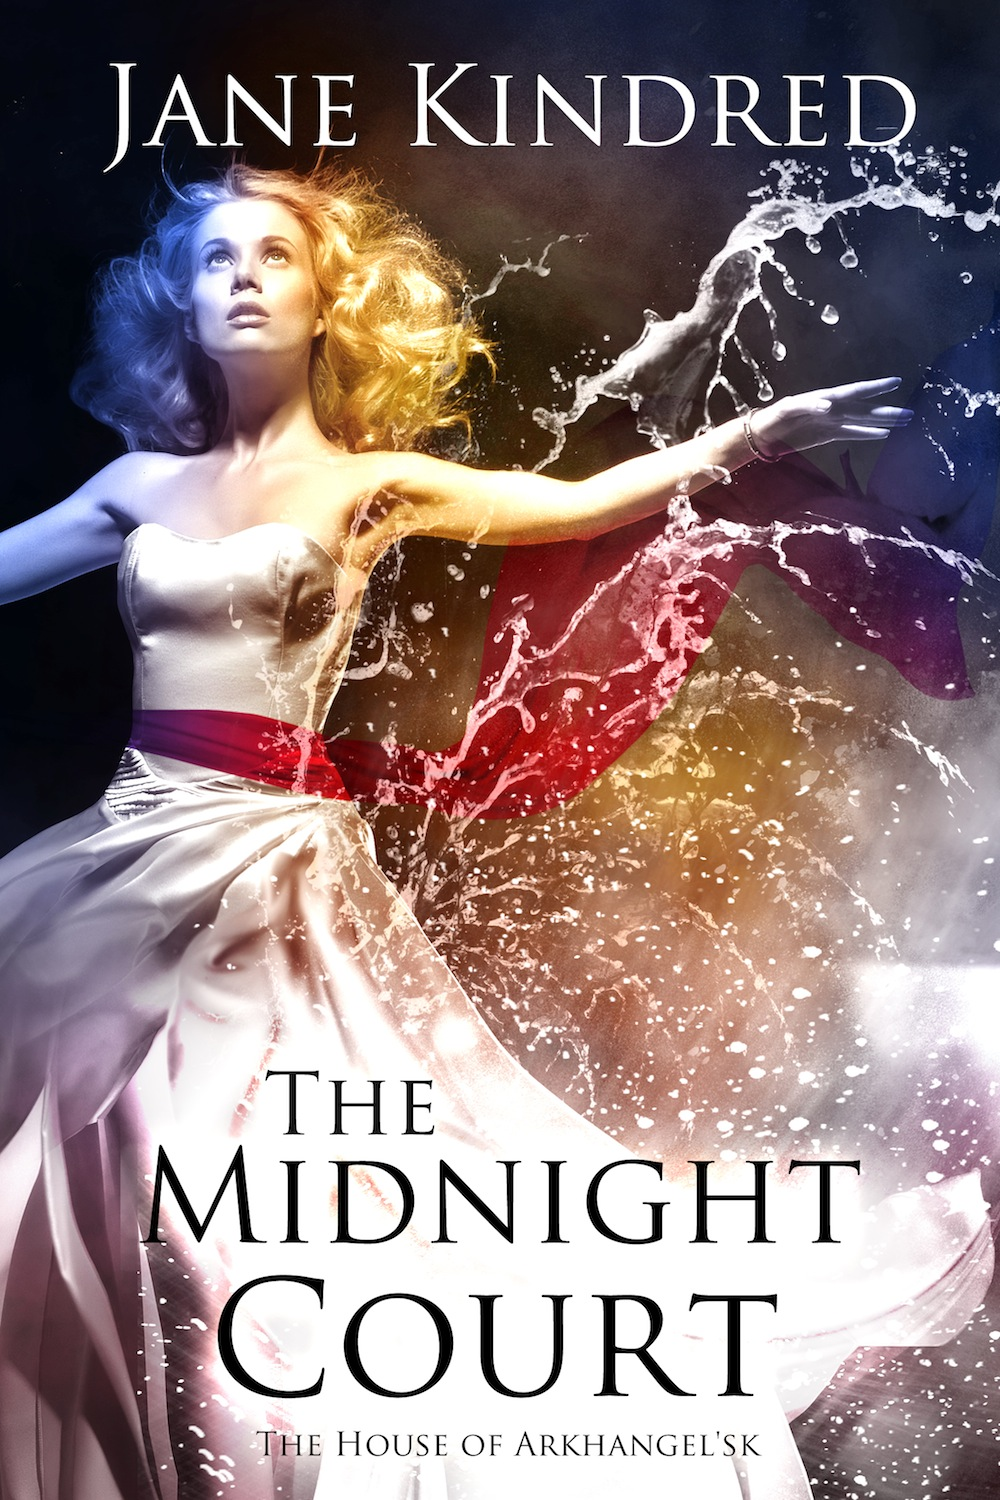 The Midnight Court (The House of Arkhangel'sk #2)